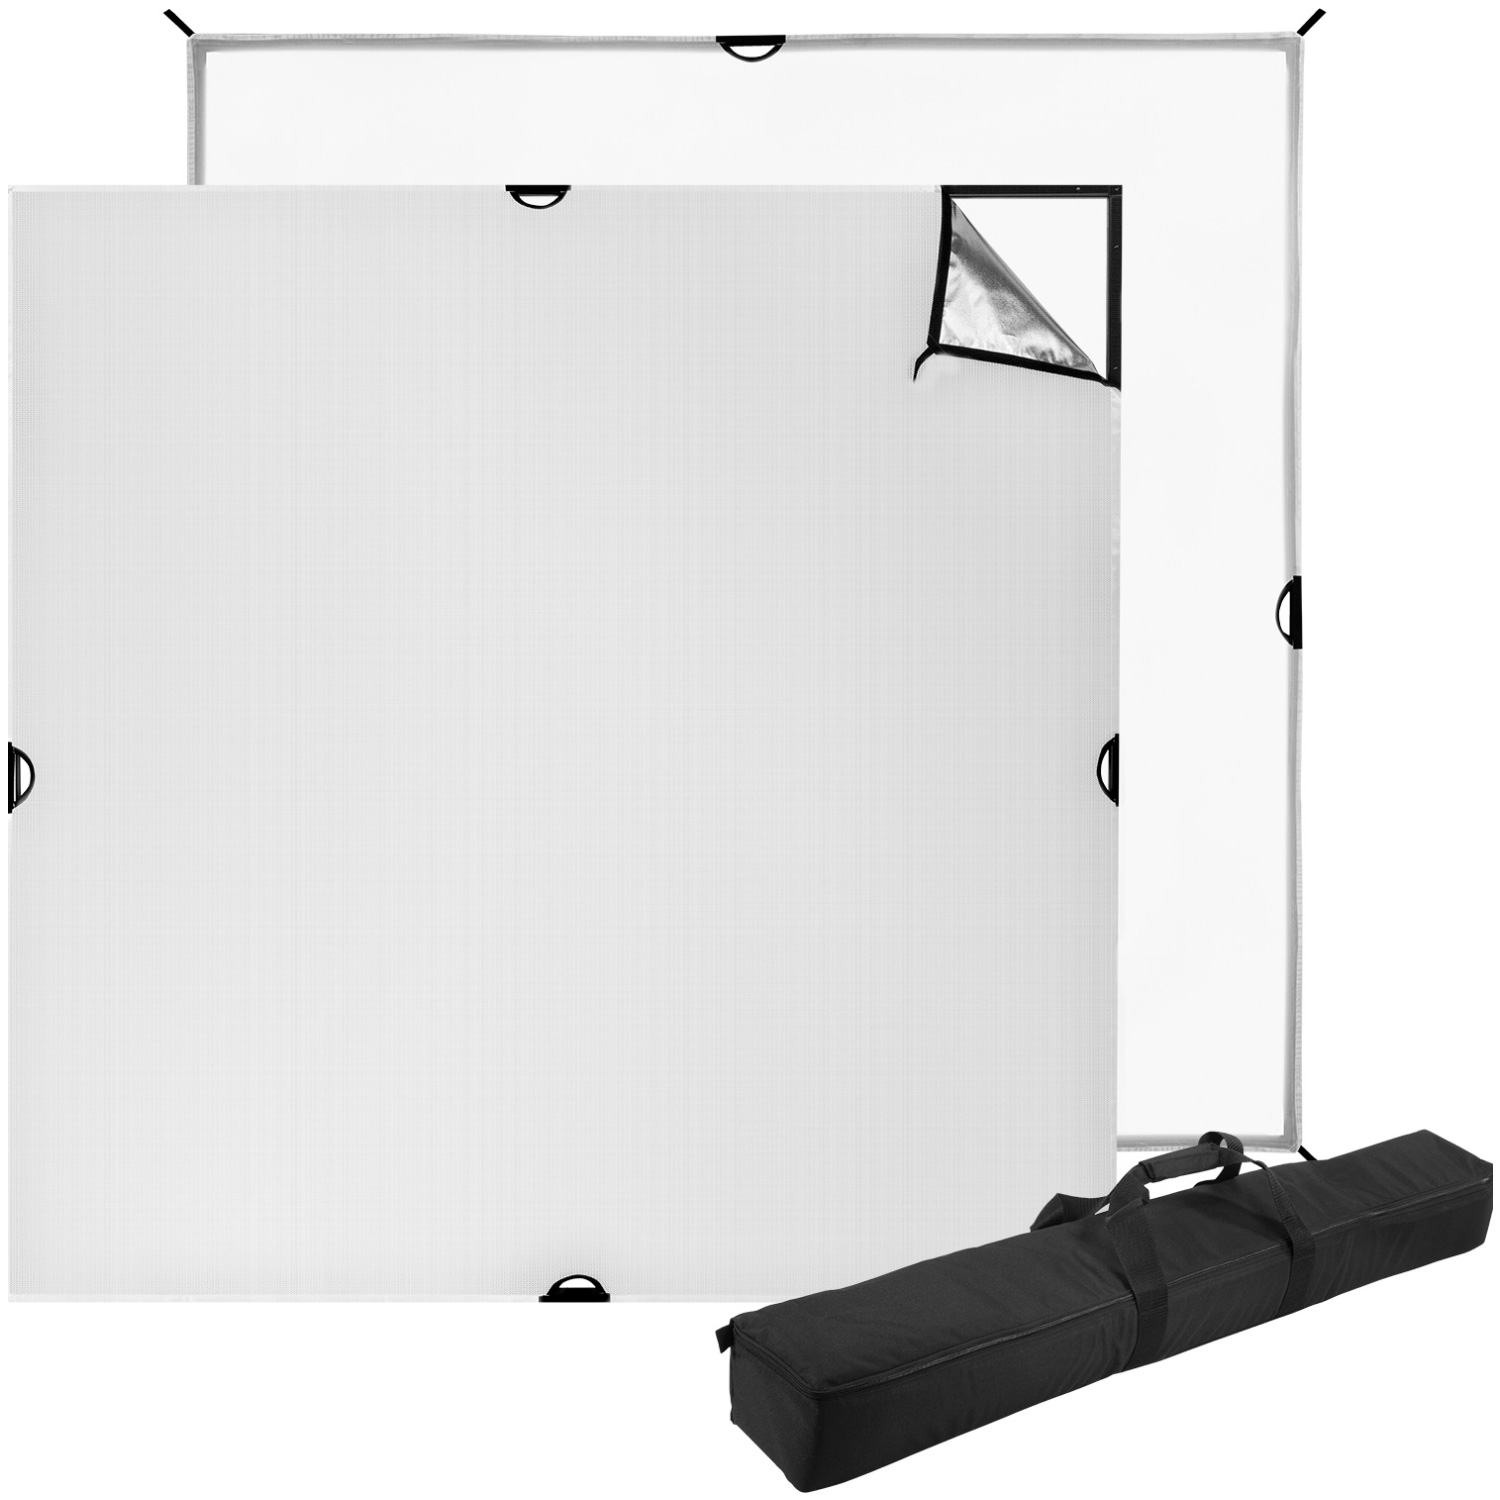 Scrim Jim Cine Kit (6' x 6')